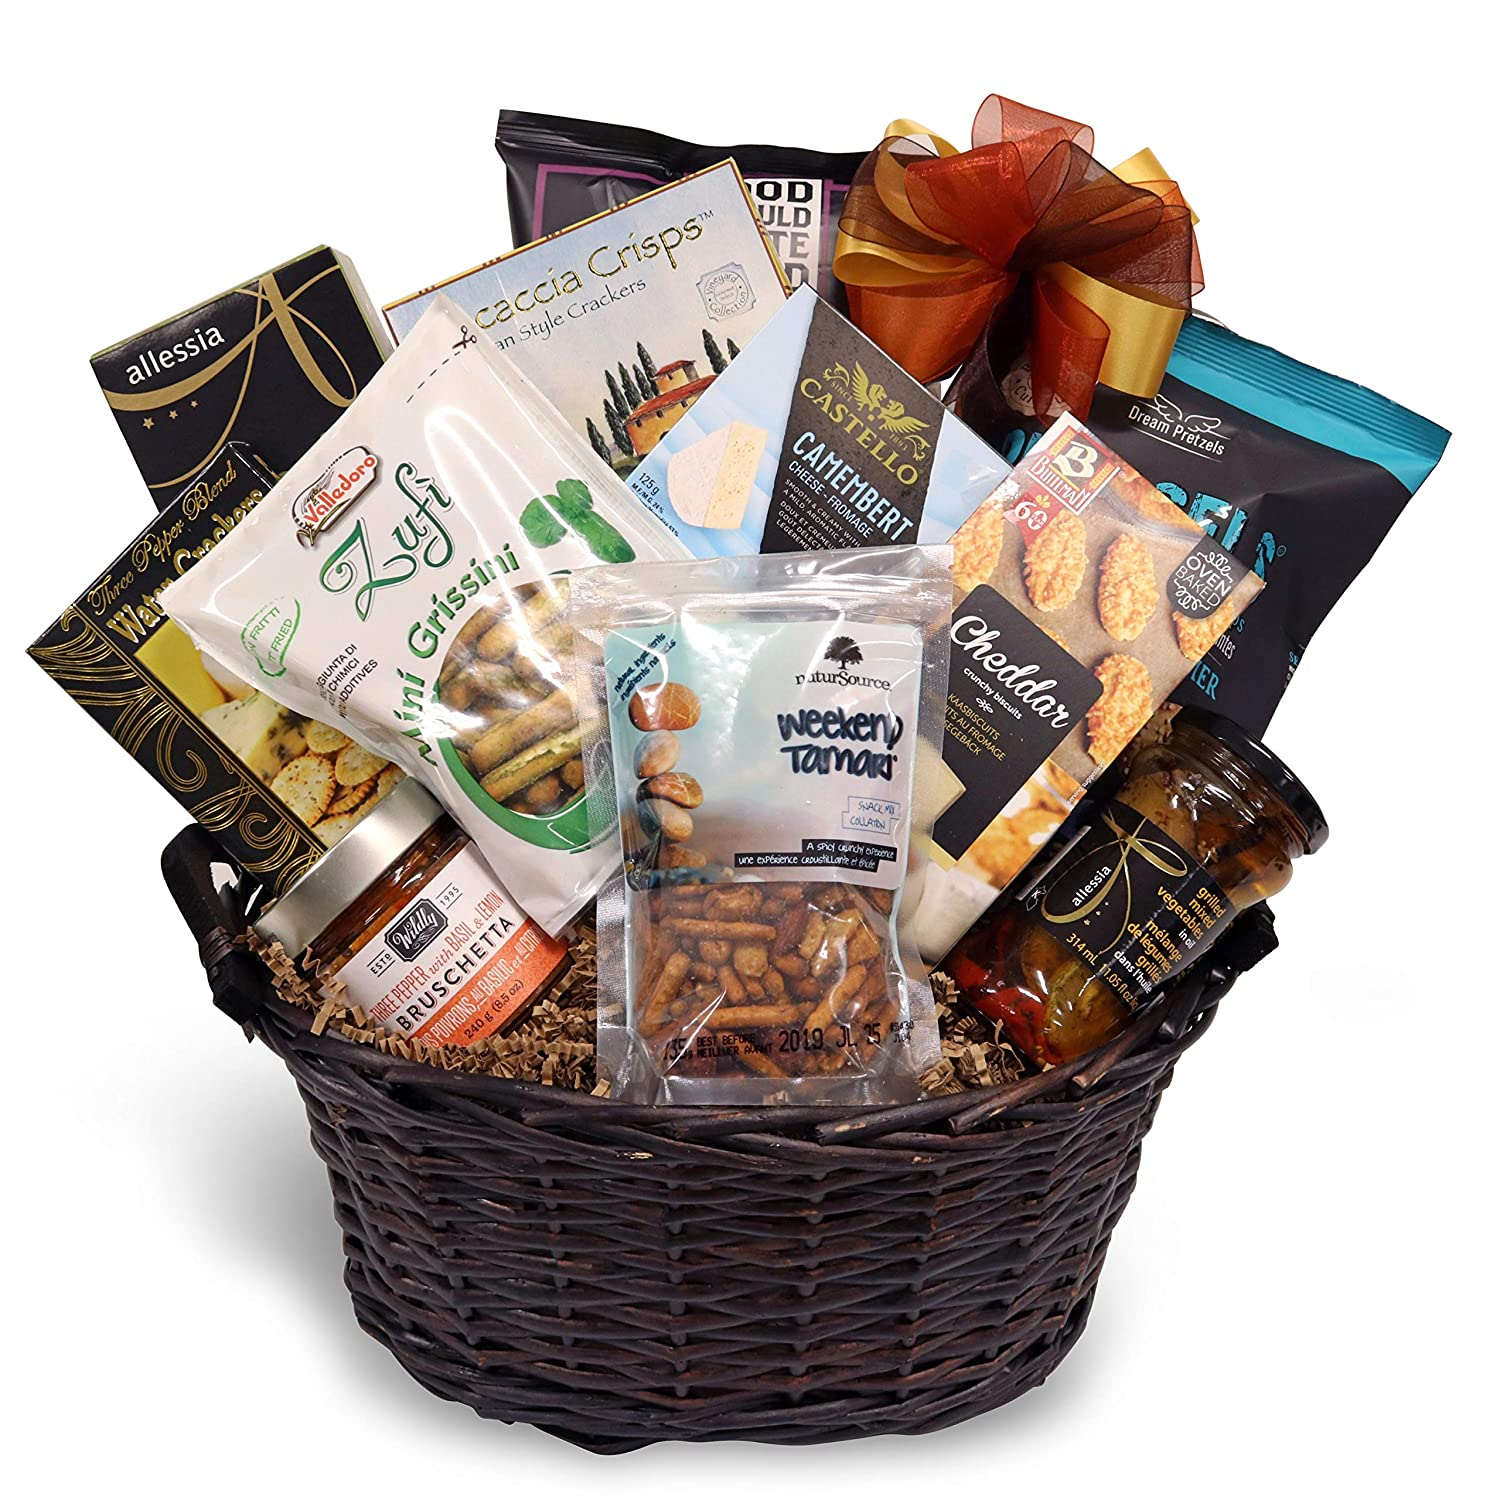 Gourmet Gift Basket with Salty and Savoury Snacks, Olives, Chips, Crackers, Nuts, Breadsticks, Cheese Buscuits and More: Amazon.ca: Grocery